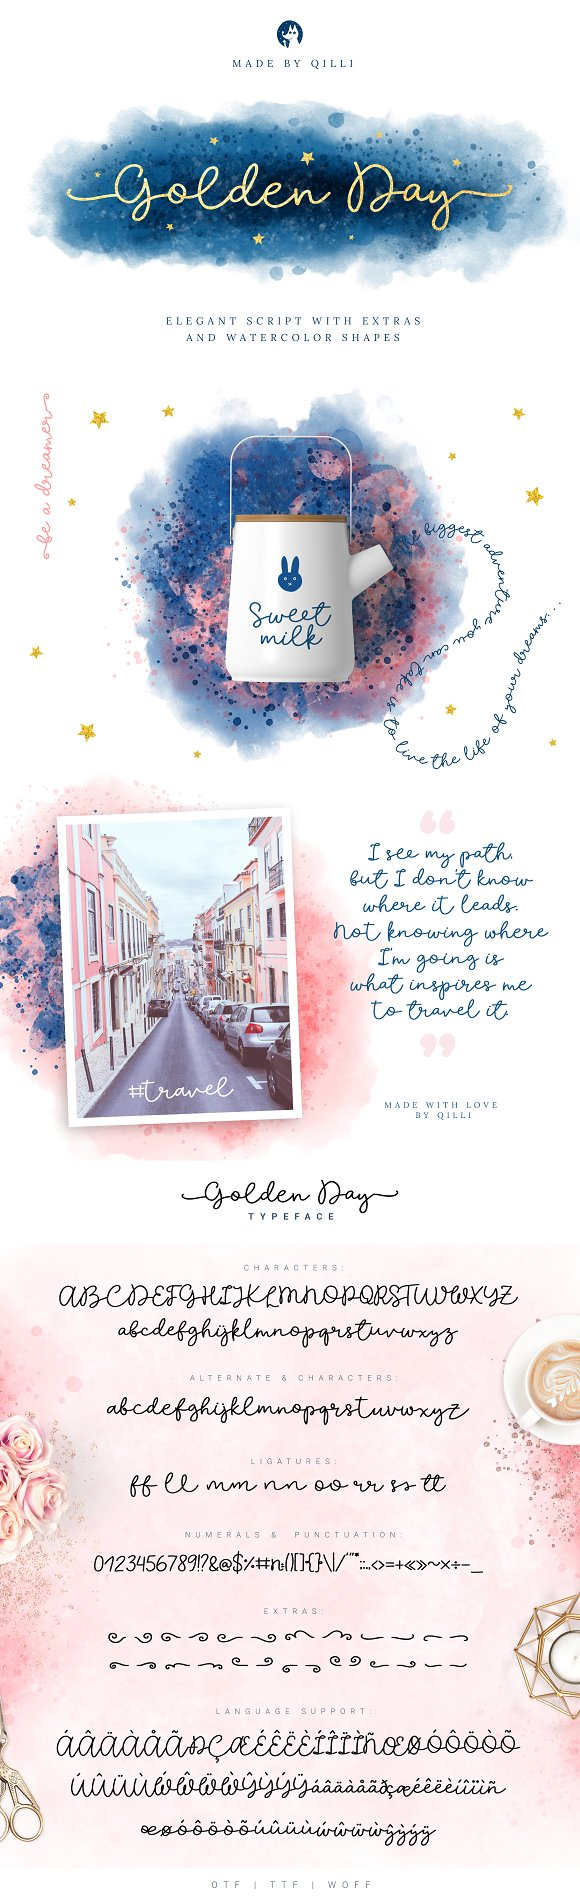 Golden Day Font With Extras Shapes